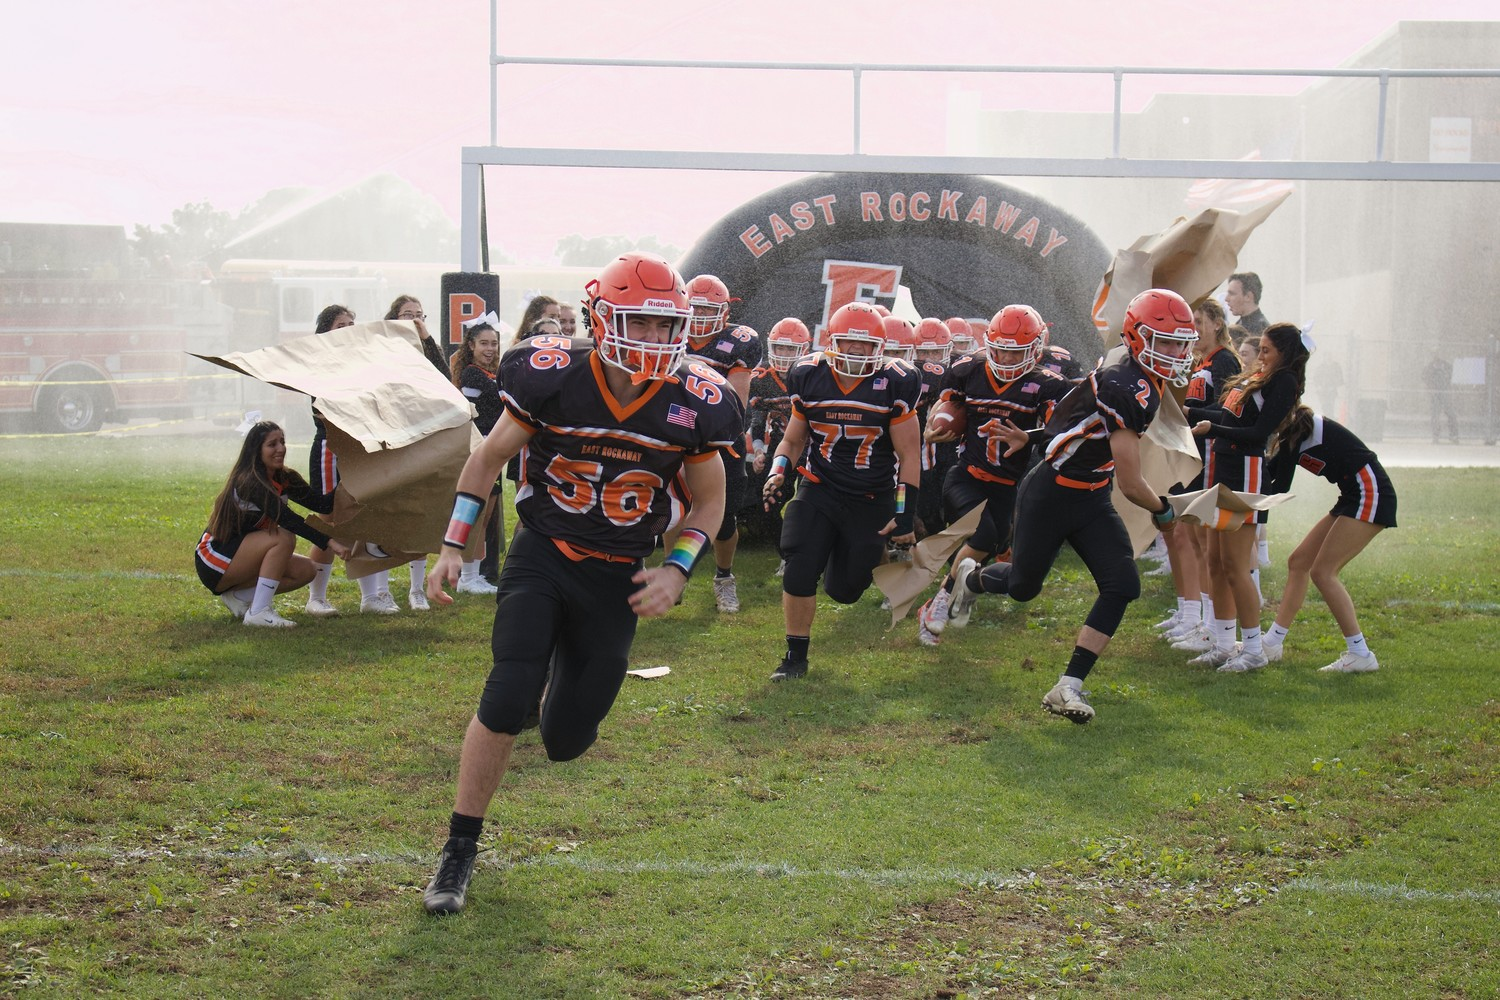 East Rockaway hosted its Homecoming festivities on Oct. 19 and 20.